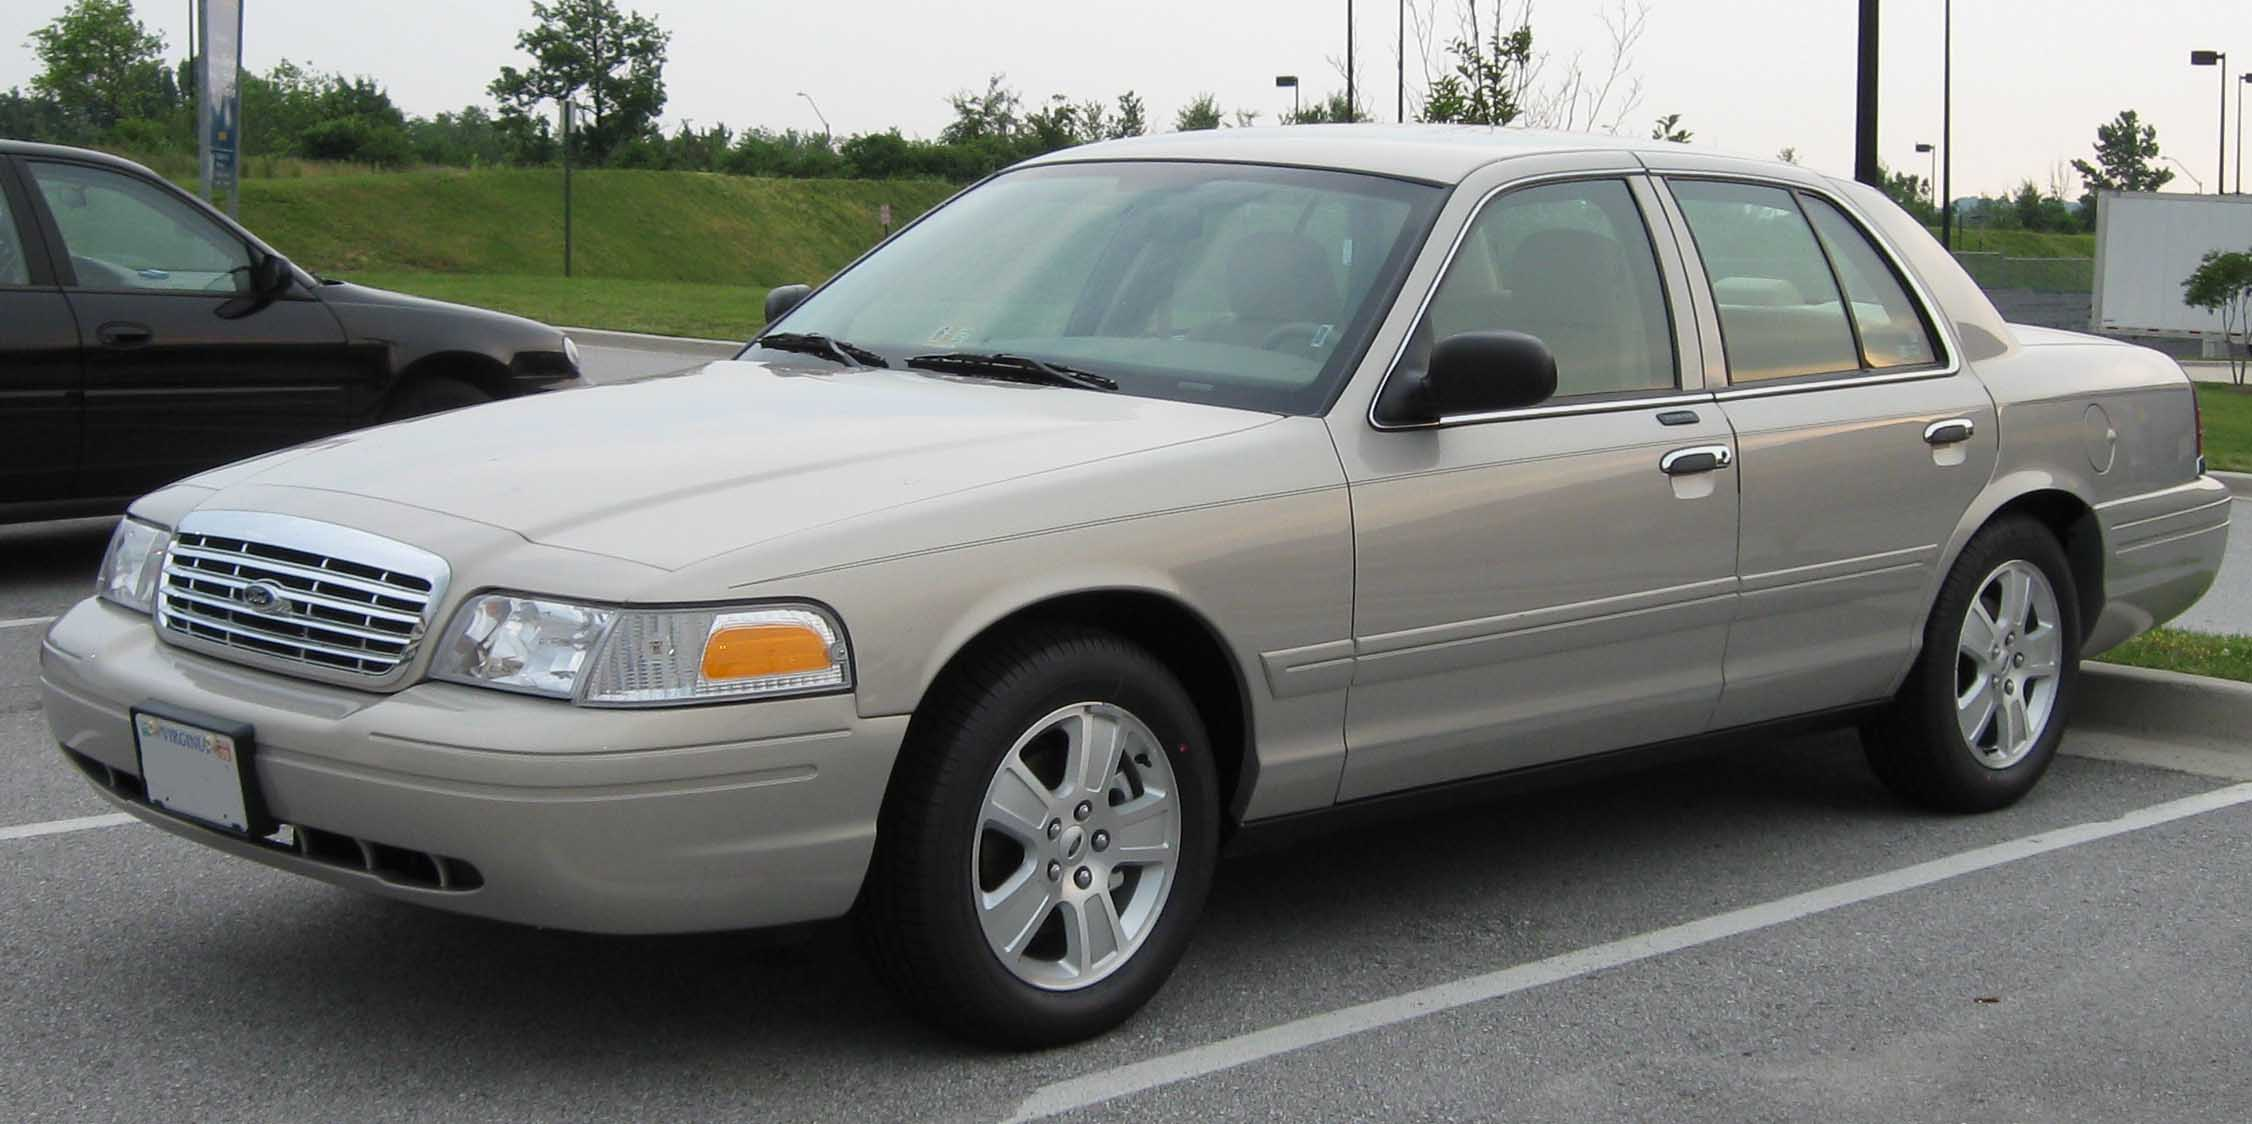 1996 Ford Crown Victoria #9